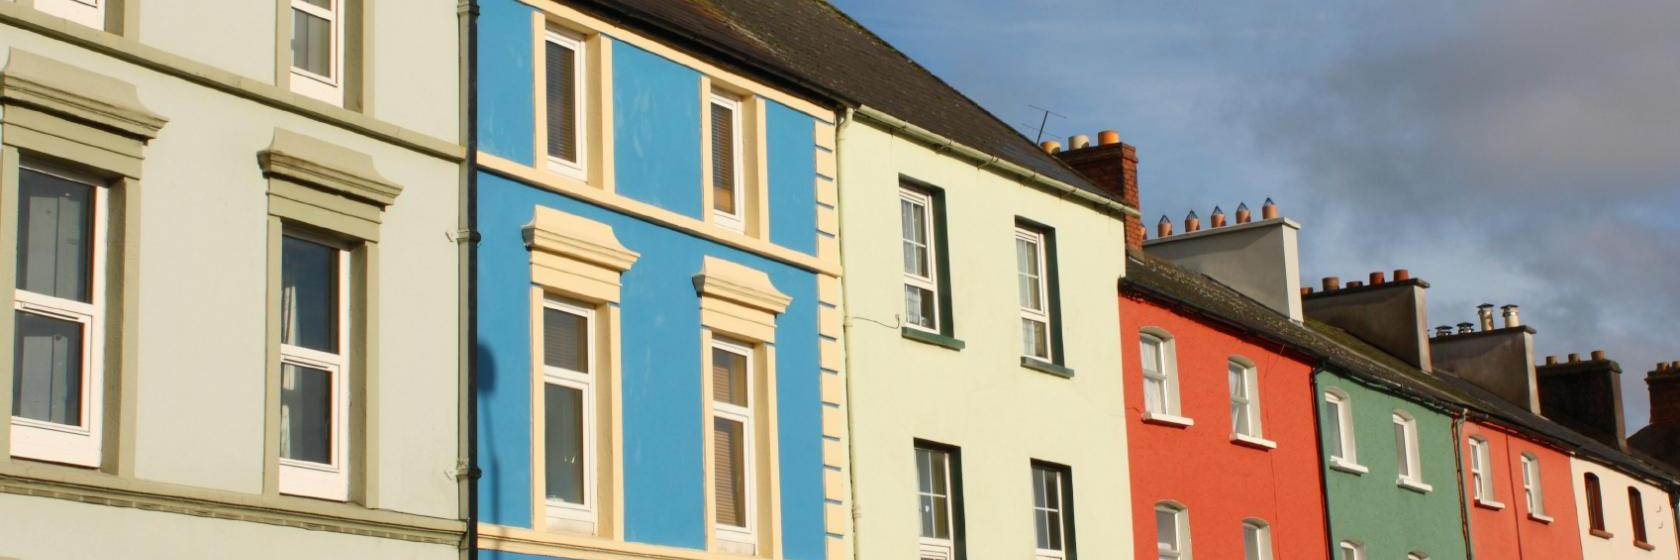 Self Catering Holiday Homes in Castlebar, brighten-up.uk | Guide